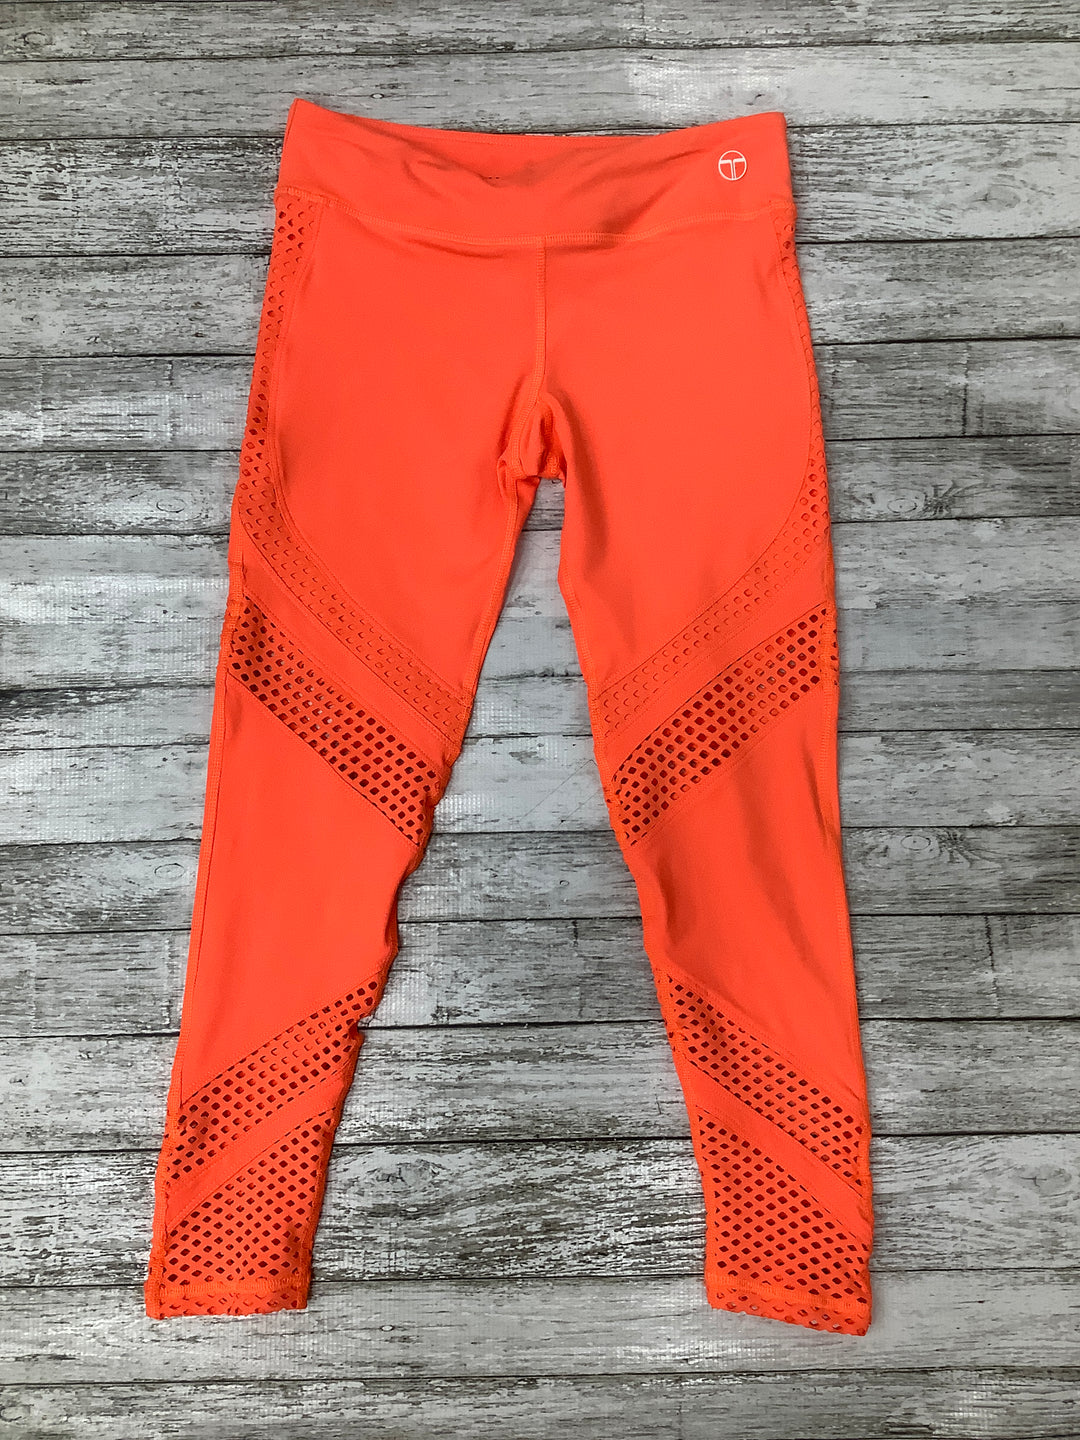 Primary Photo - BRAND: TRINA TURK , STYLE: ATHLETIC PANTS, COLOR: NEON , SIZE: S , SKU: 105-2768-12182